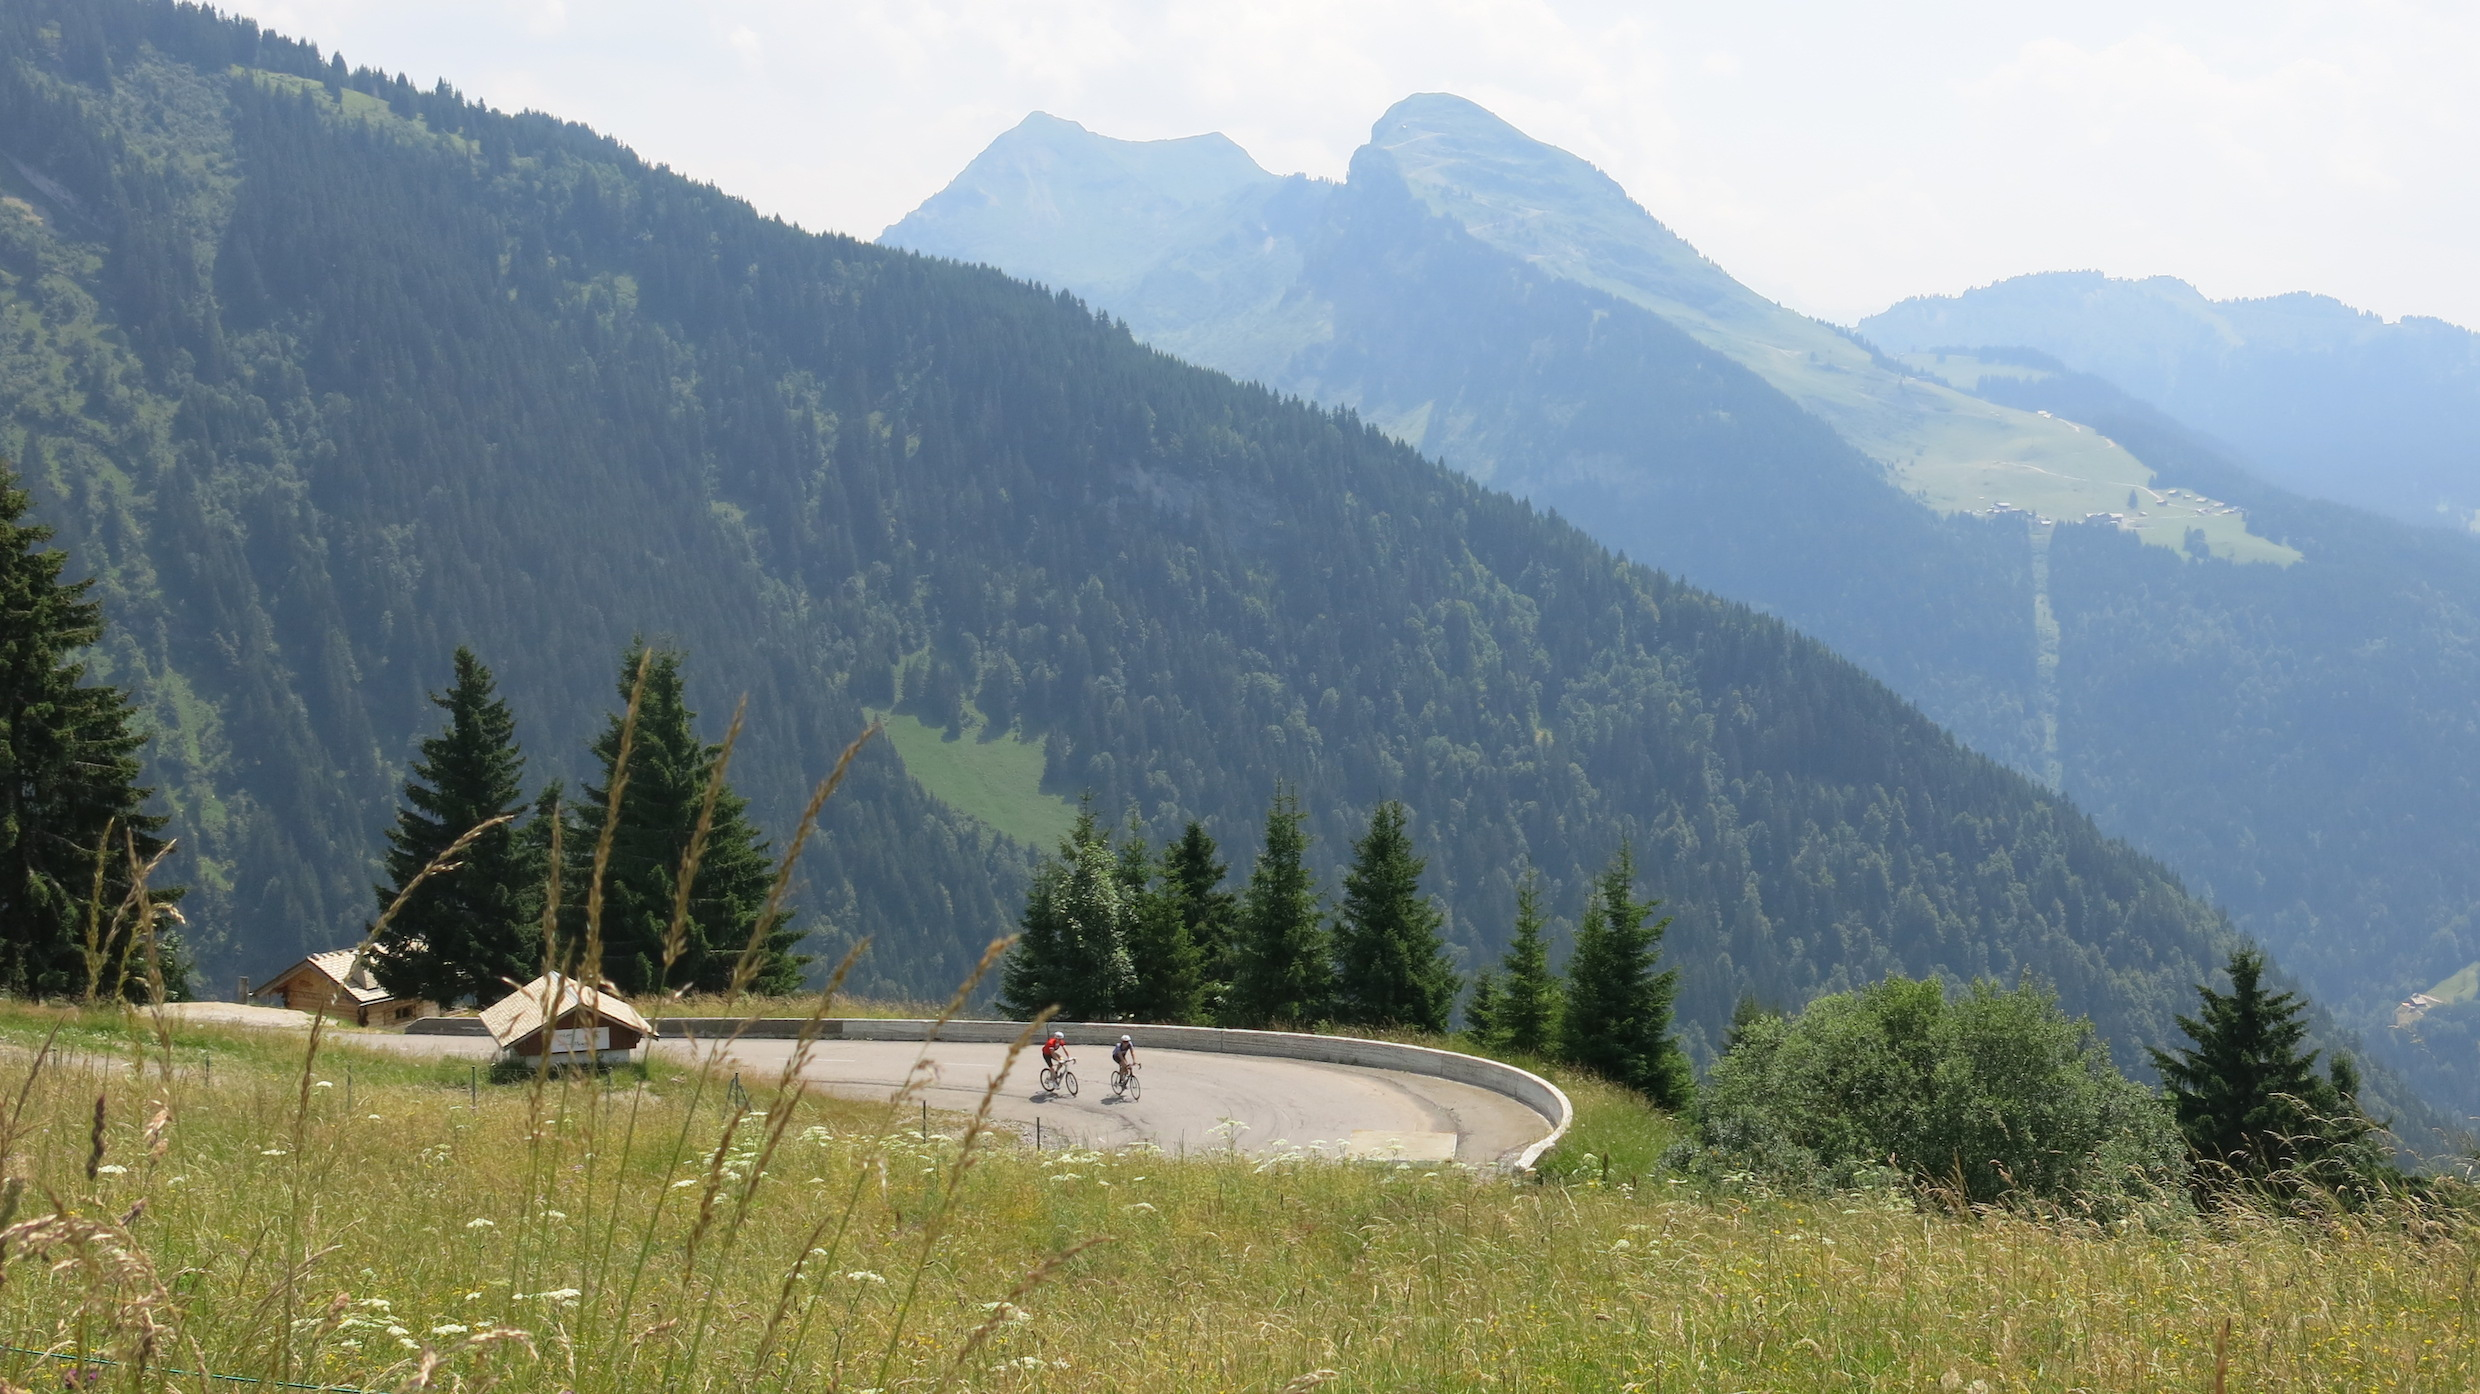 Morzine-Avoriaz: James and SGL climbing through the afternoon heat. Photo by Jimi Thomson.